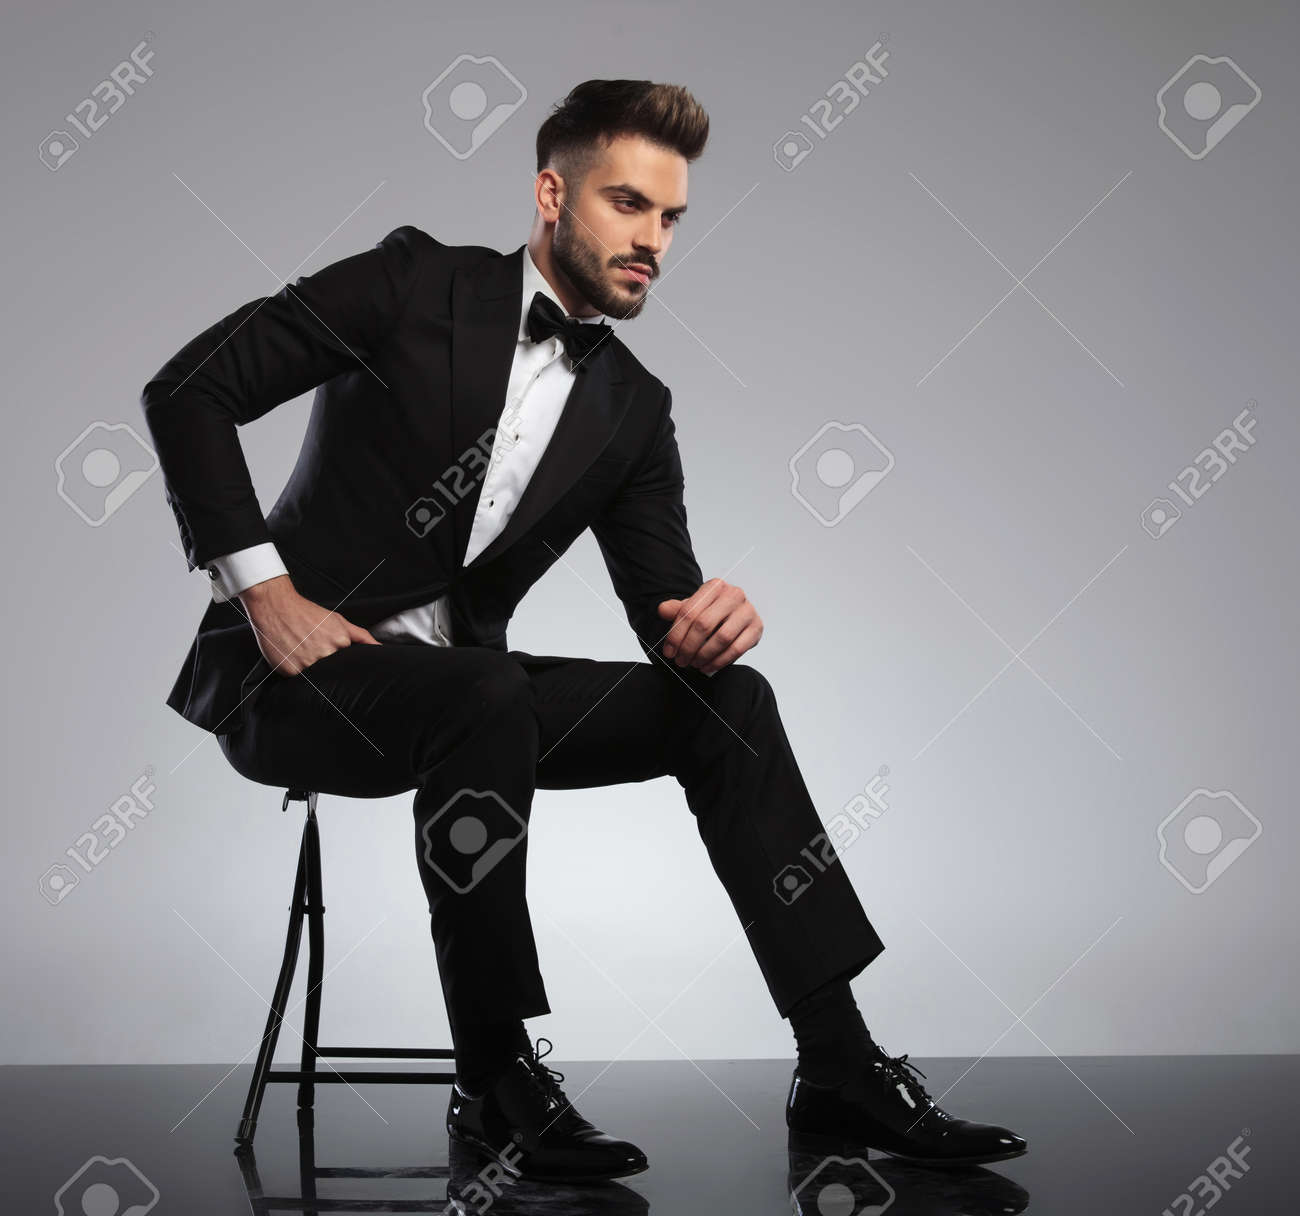 Upset groom frowning and looking away while wearing tuxedo, sitting on a chair on gray studio background - 138287304